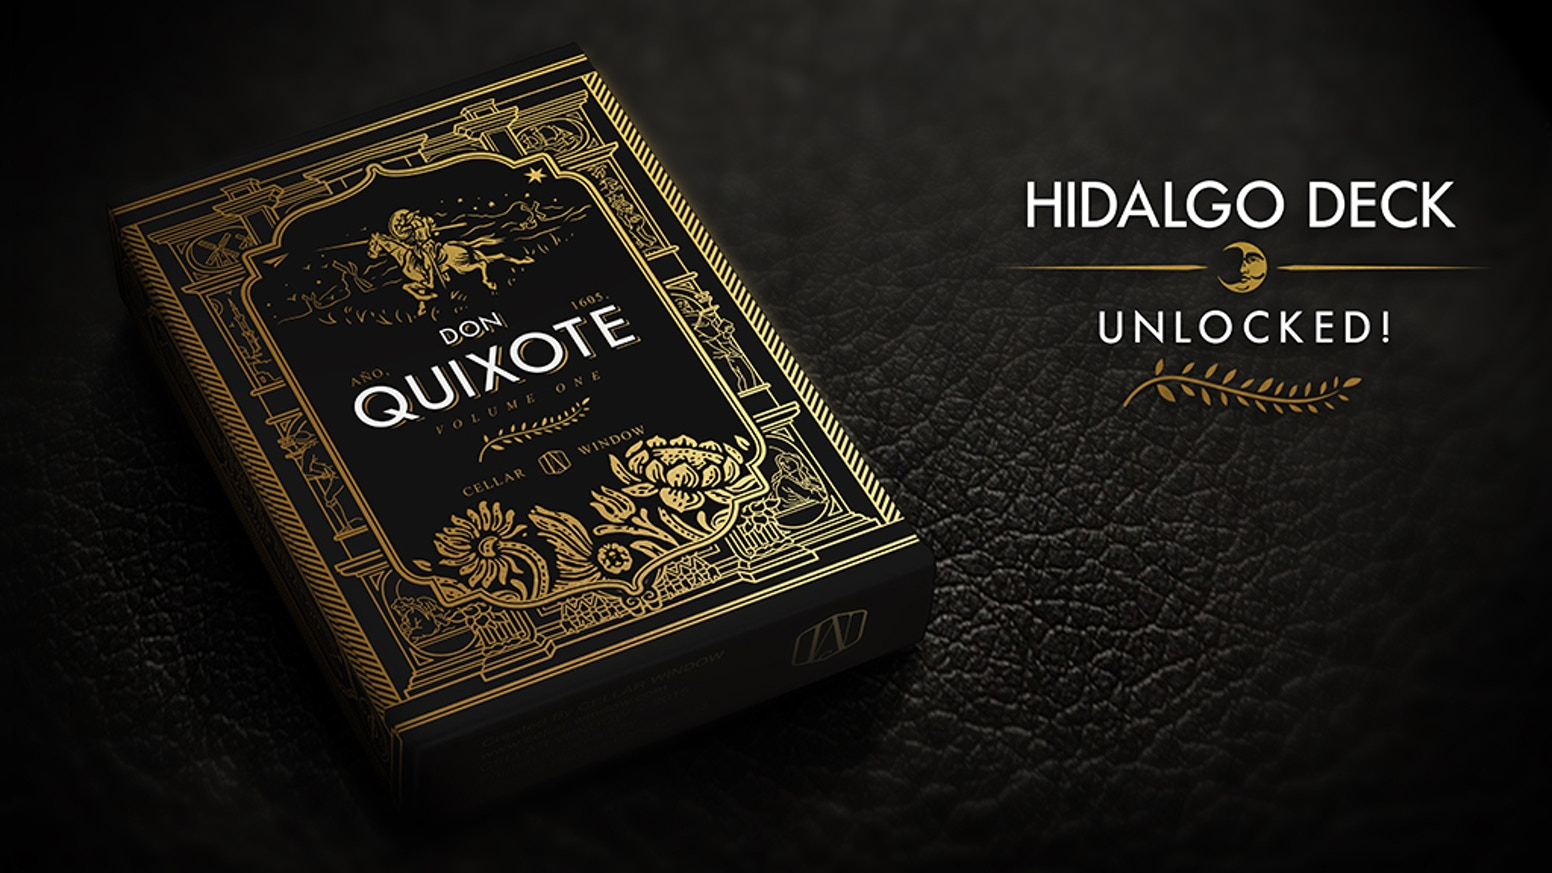 Playing cards inspired by the famous novel - The Ingenious Gentleman Don Quixote of La Mancha.